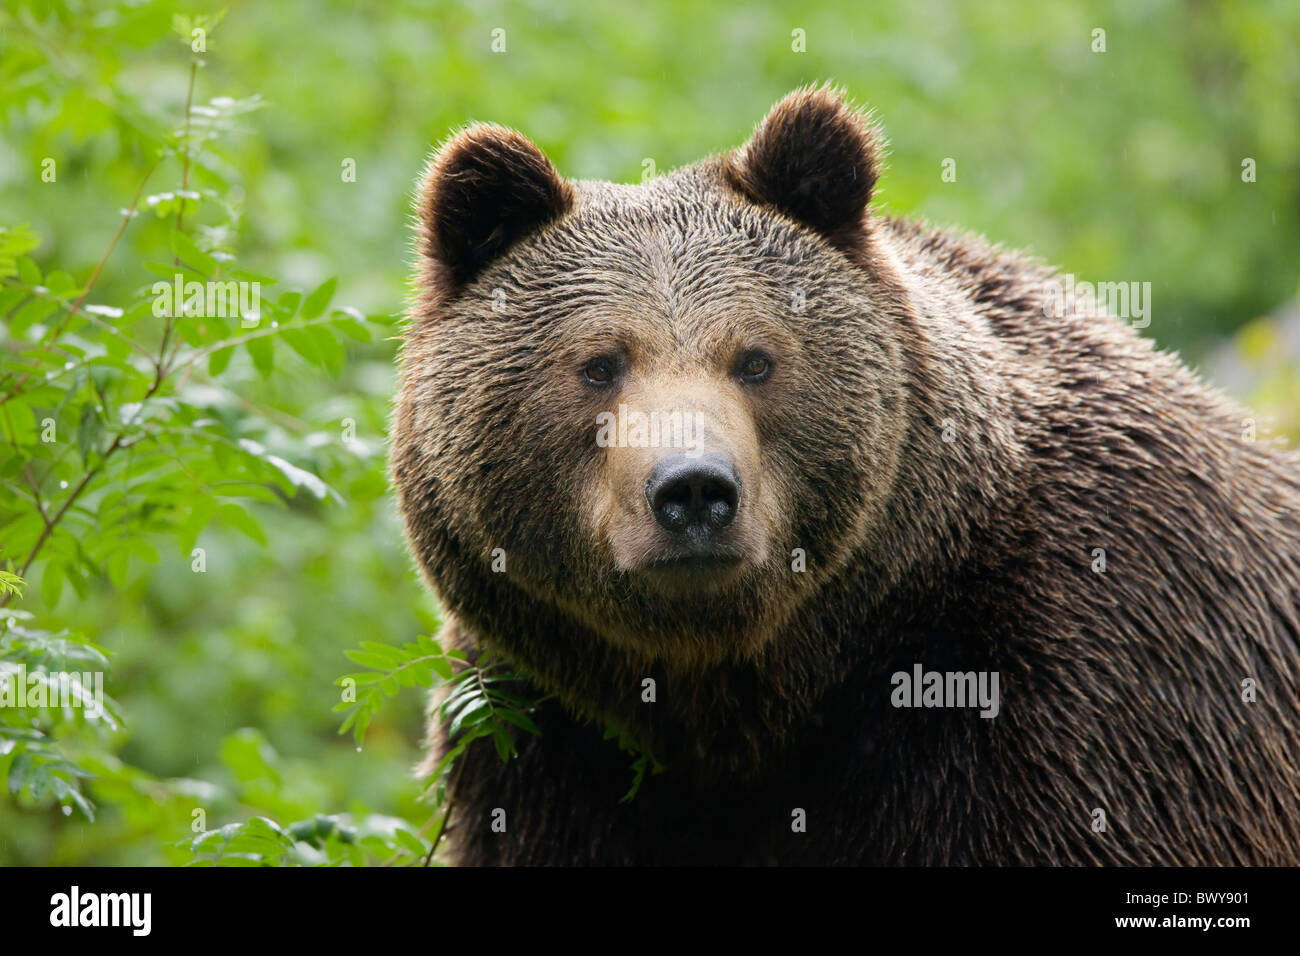 Brown Bear, Bavarian Forest National Park, Bavaria, Germany Stock Photo